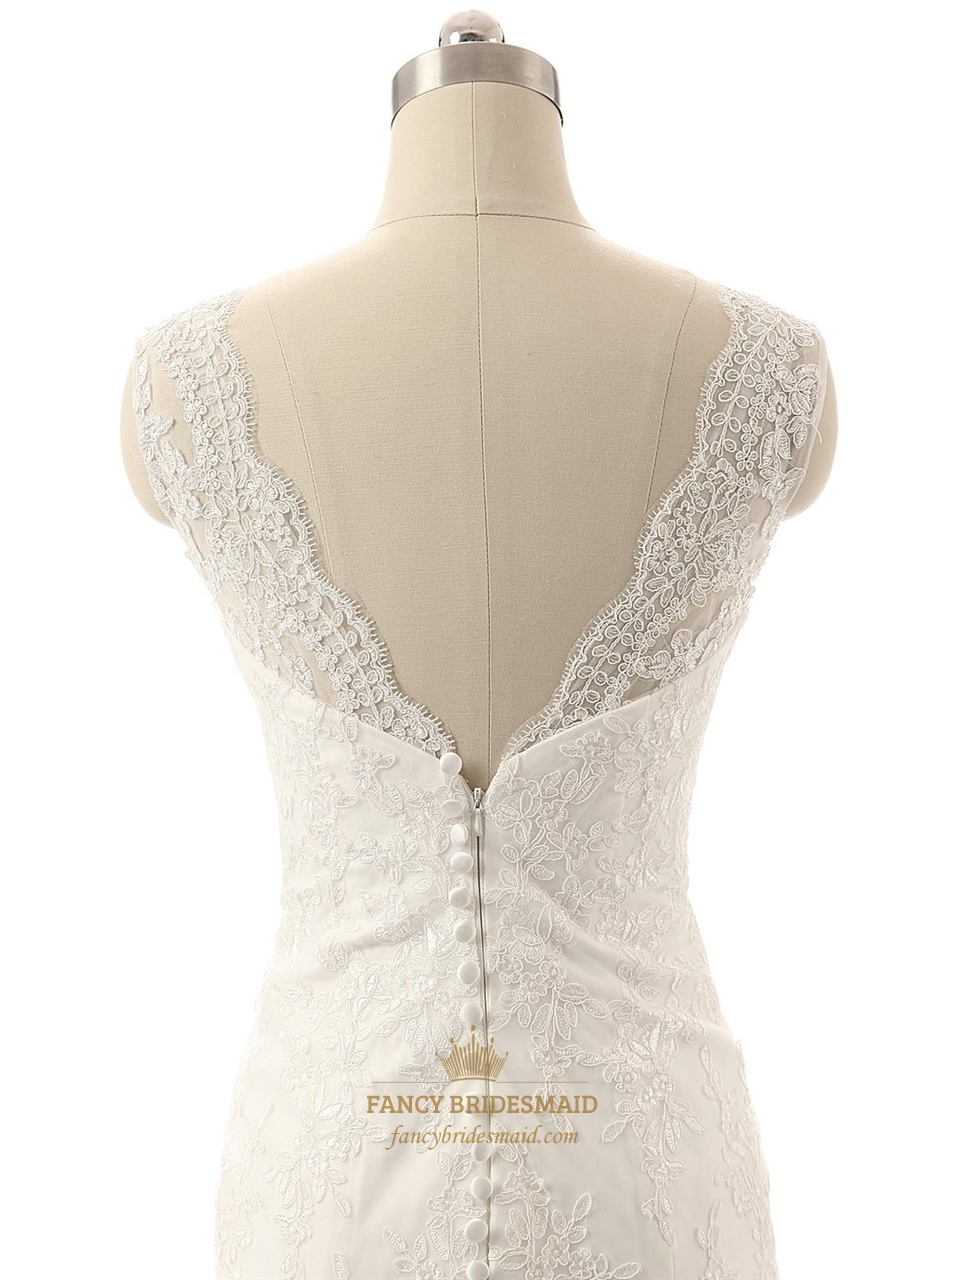 Mermaid Wedding Dress With Lace Straps : Ivory lace applique mermaid v neckline wedding dress with